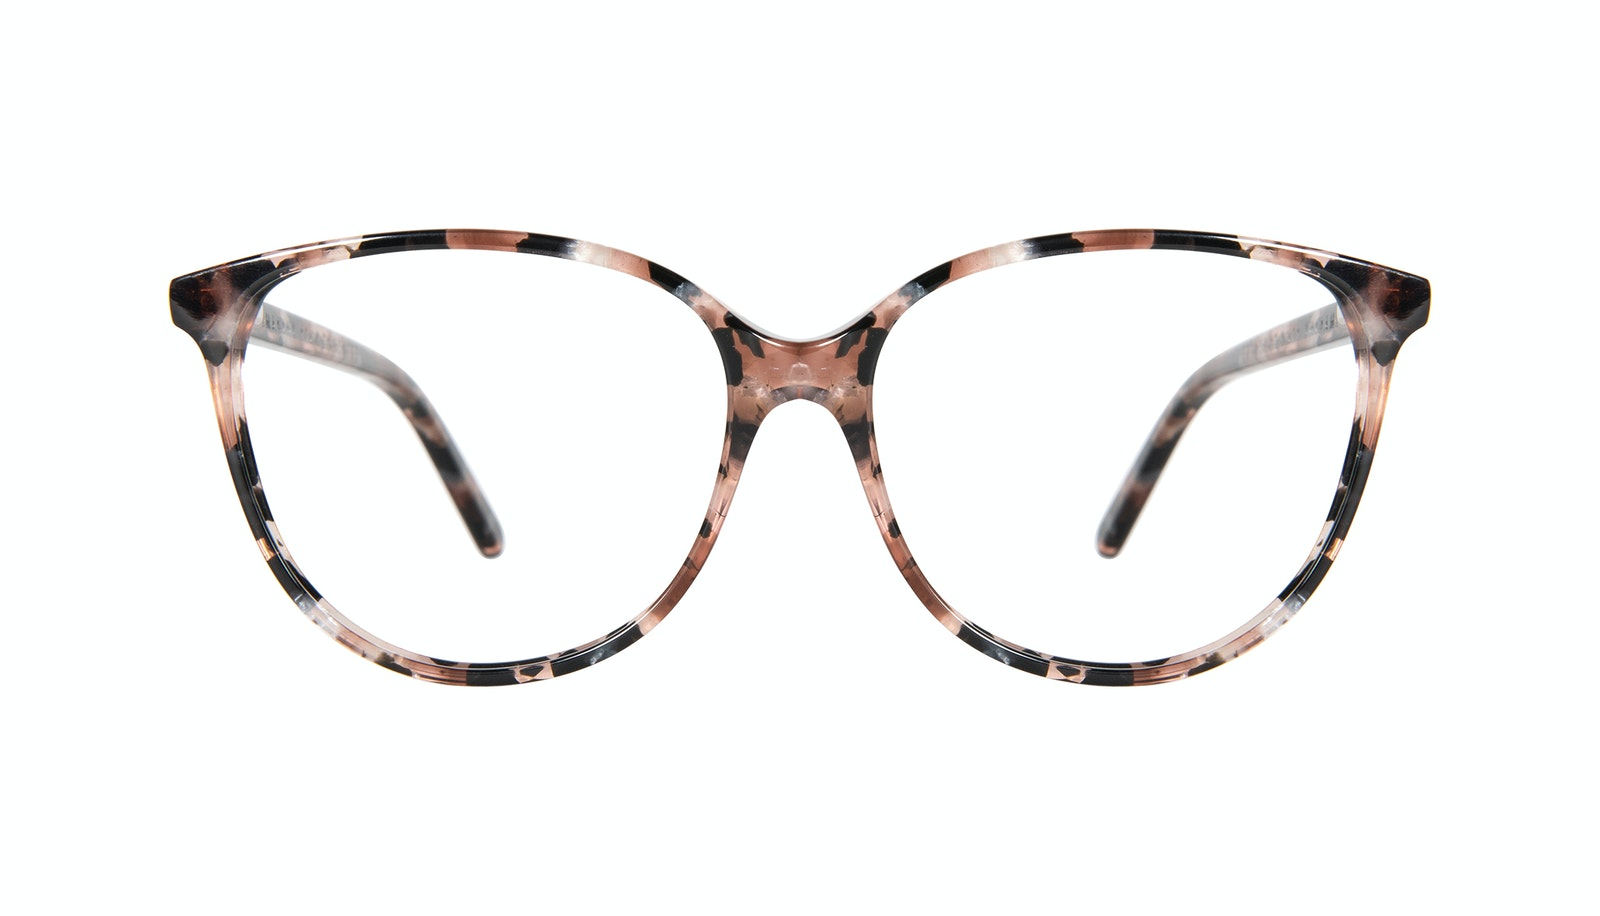 Affordable Fashion Glasses Cat Eye Eyeglasses Women Imagine Pink Tortoise